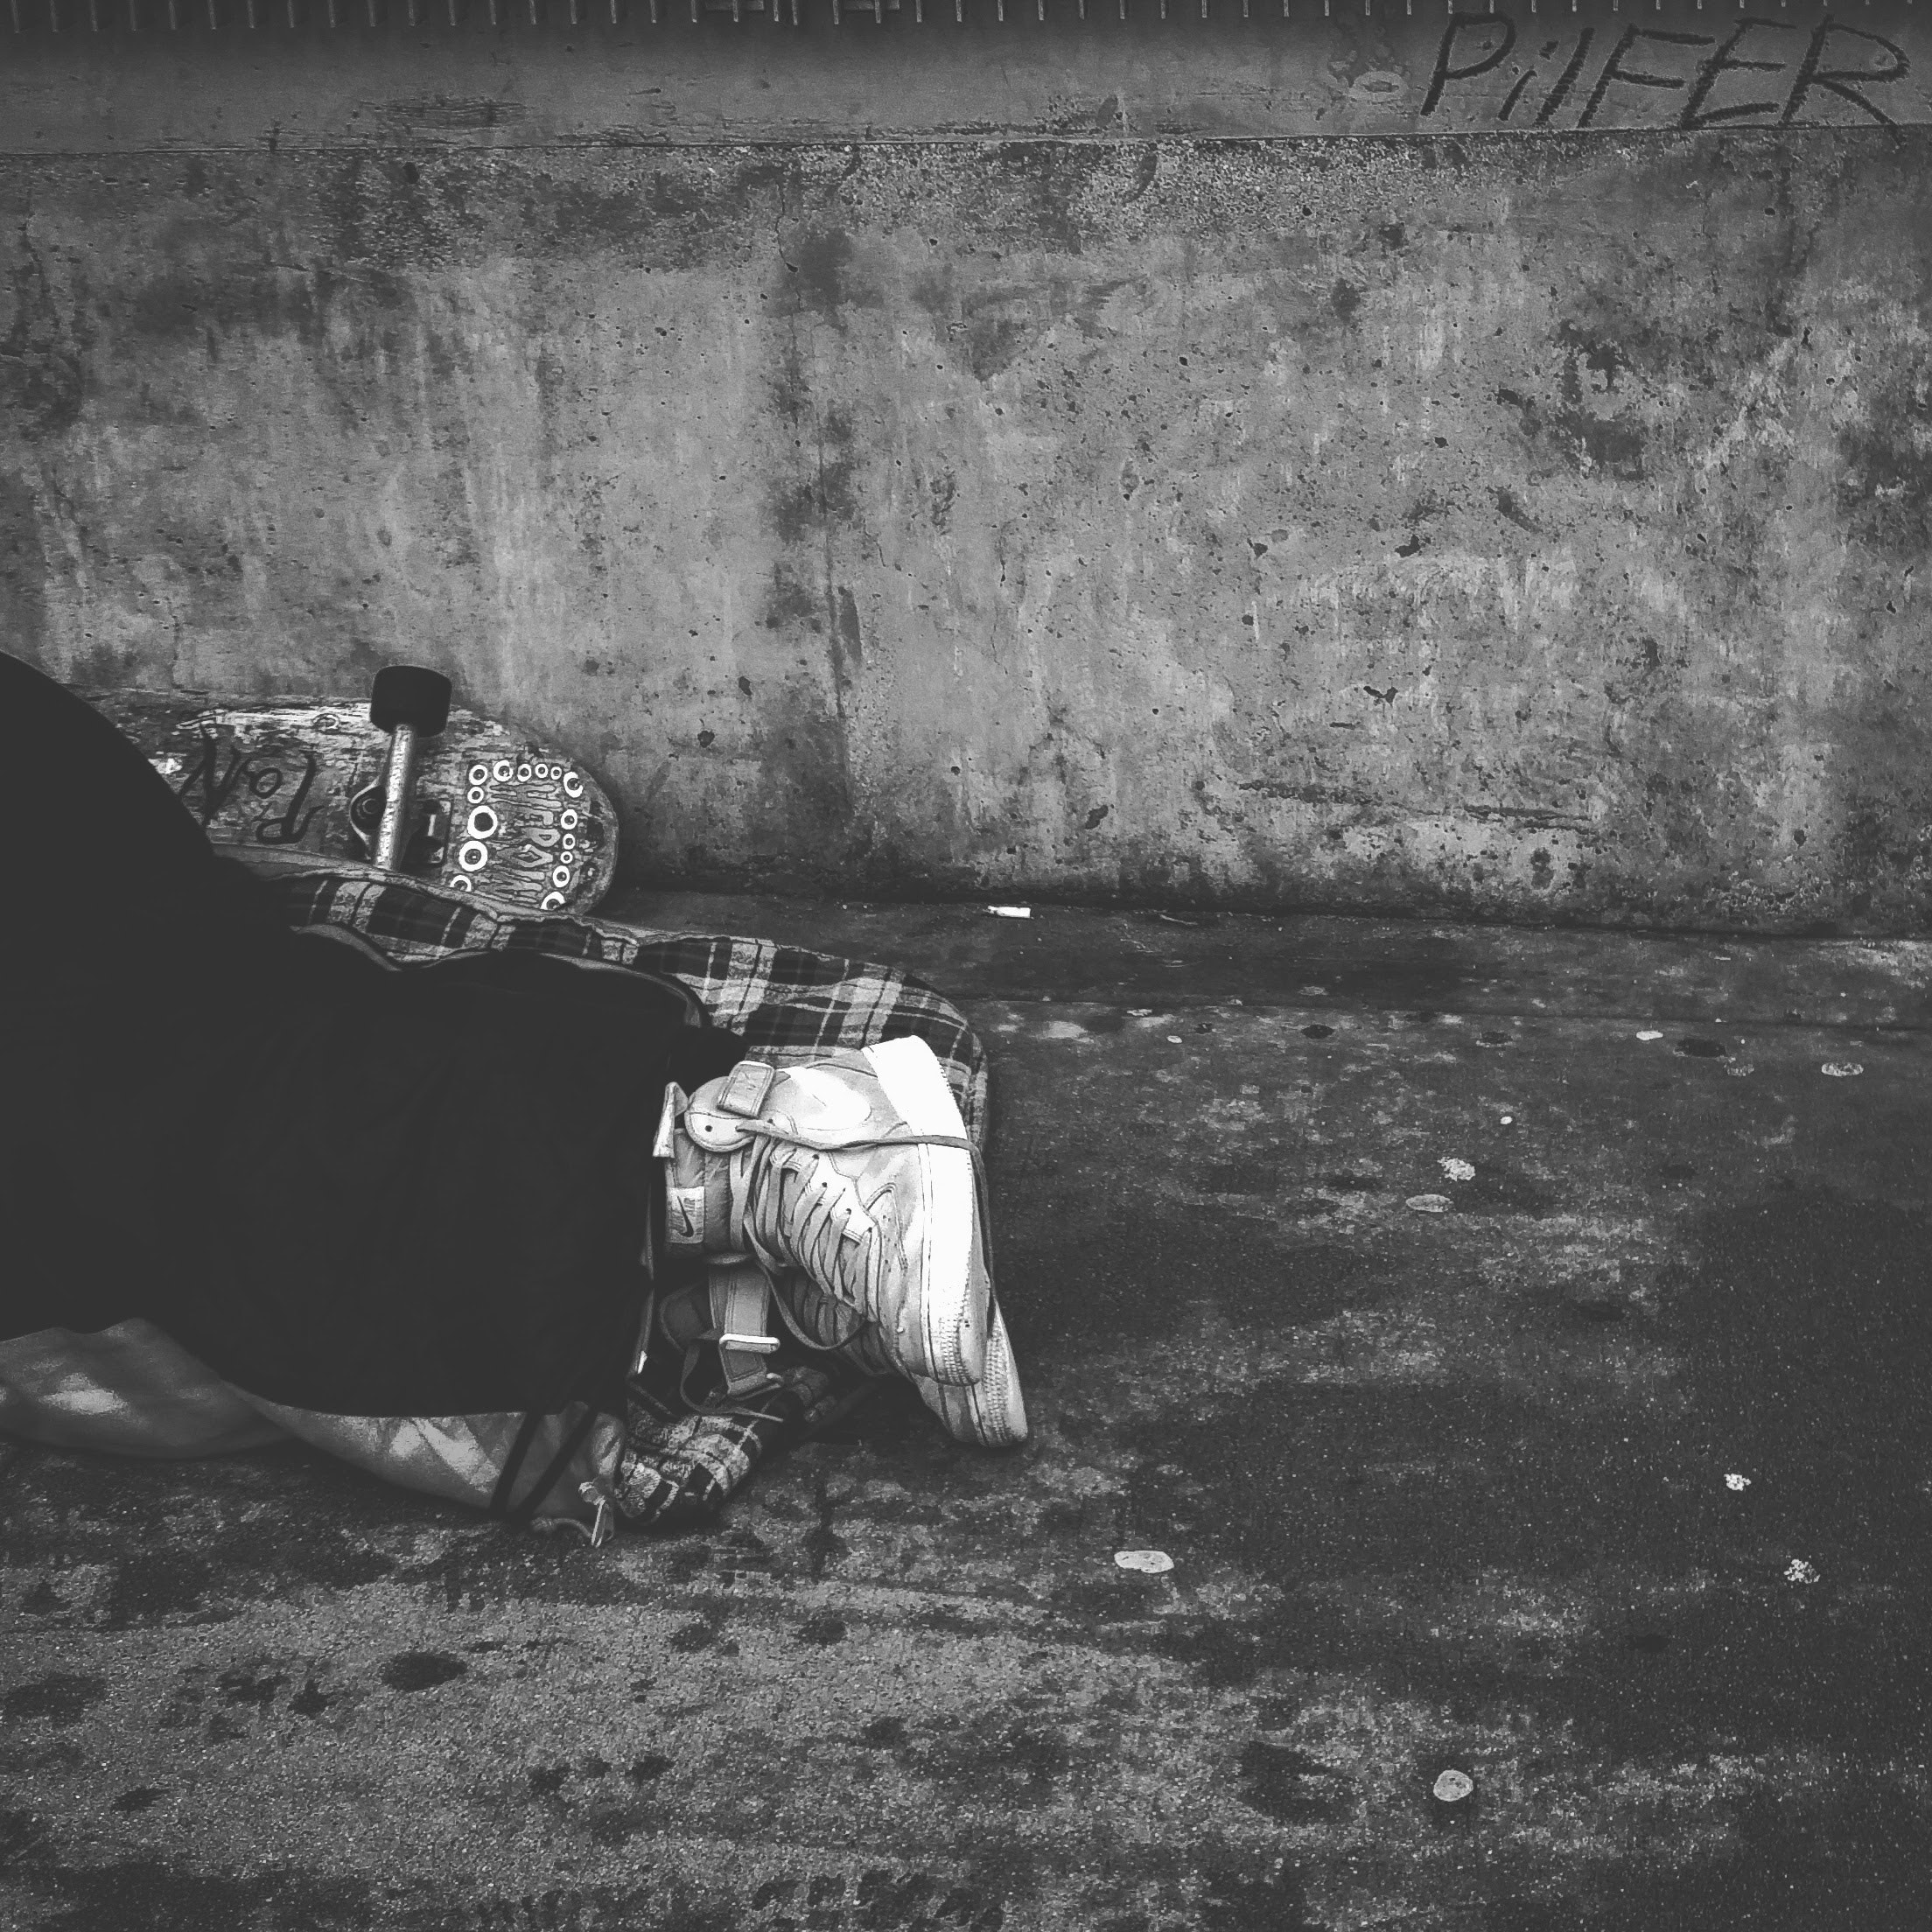 abandoned-adult-black-and-white-384553